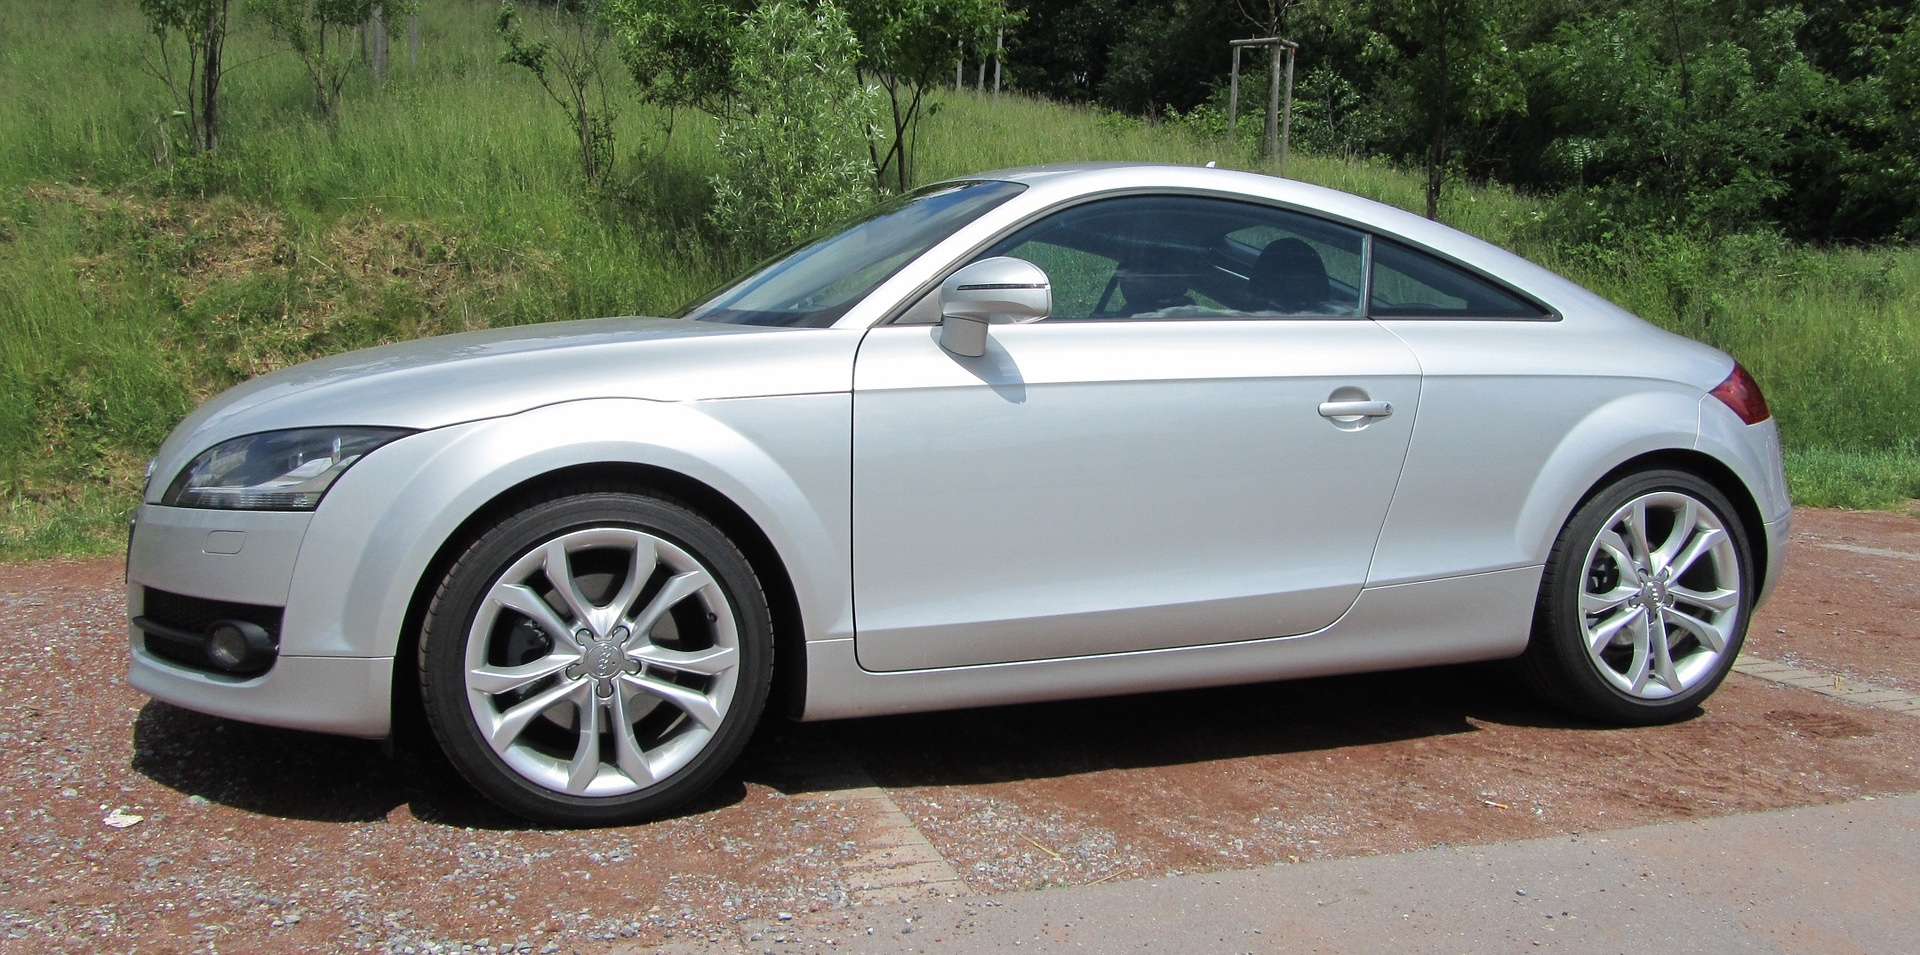 Aiming for 50% EVs by 2025, Audi to replace TT coupe with electric car, could do the same for A8